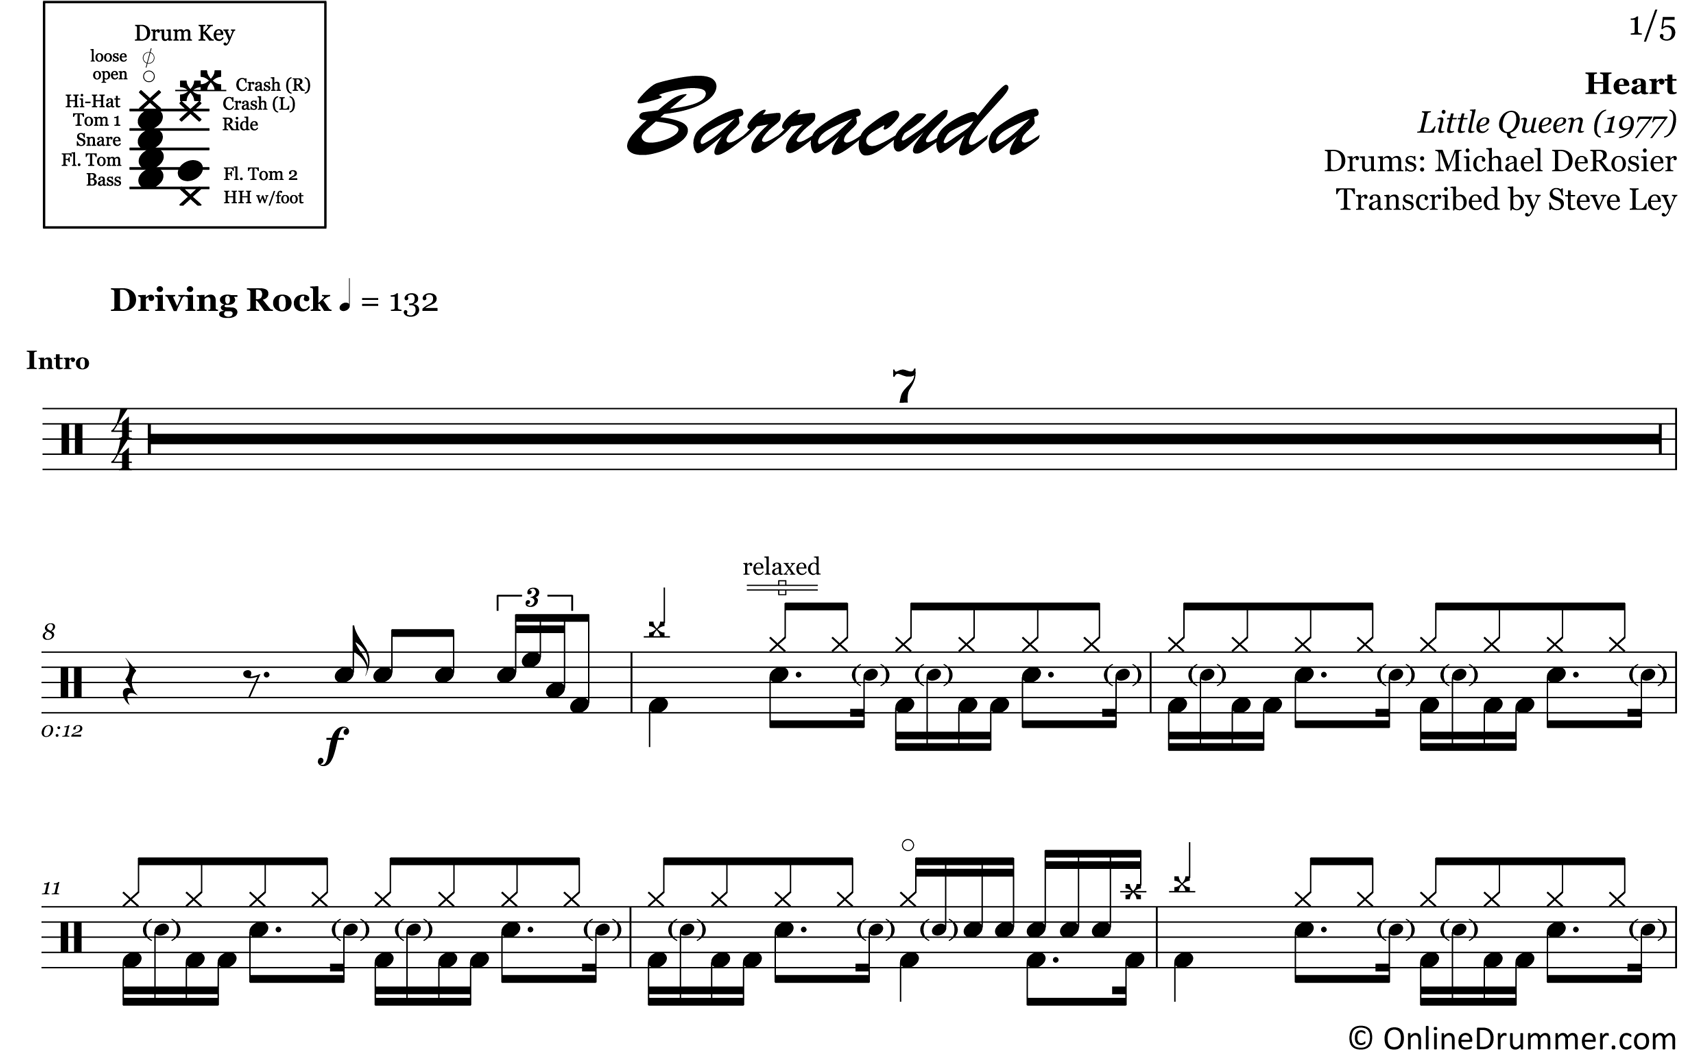 Barracuda - Heart - Drum Sheet Music